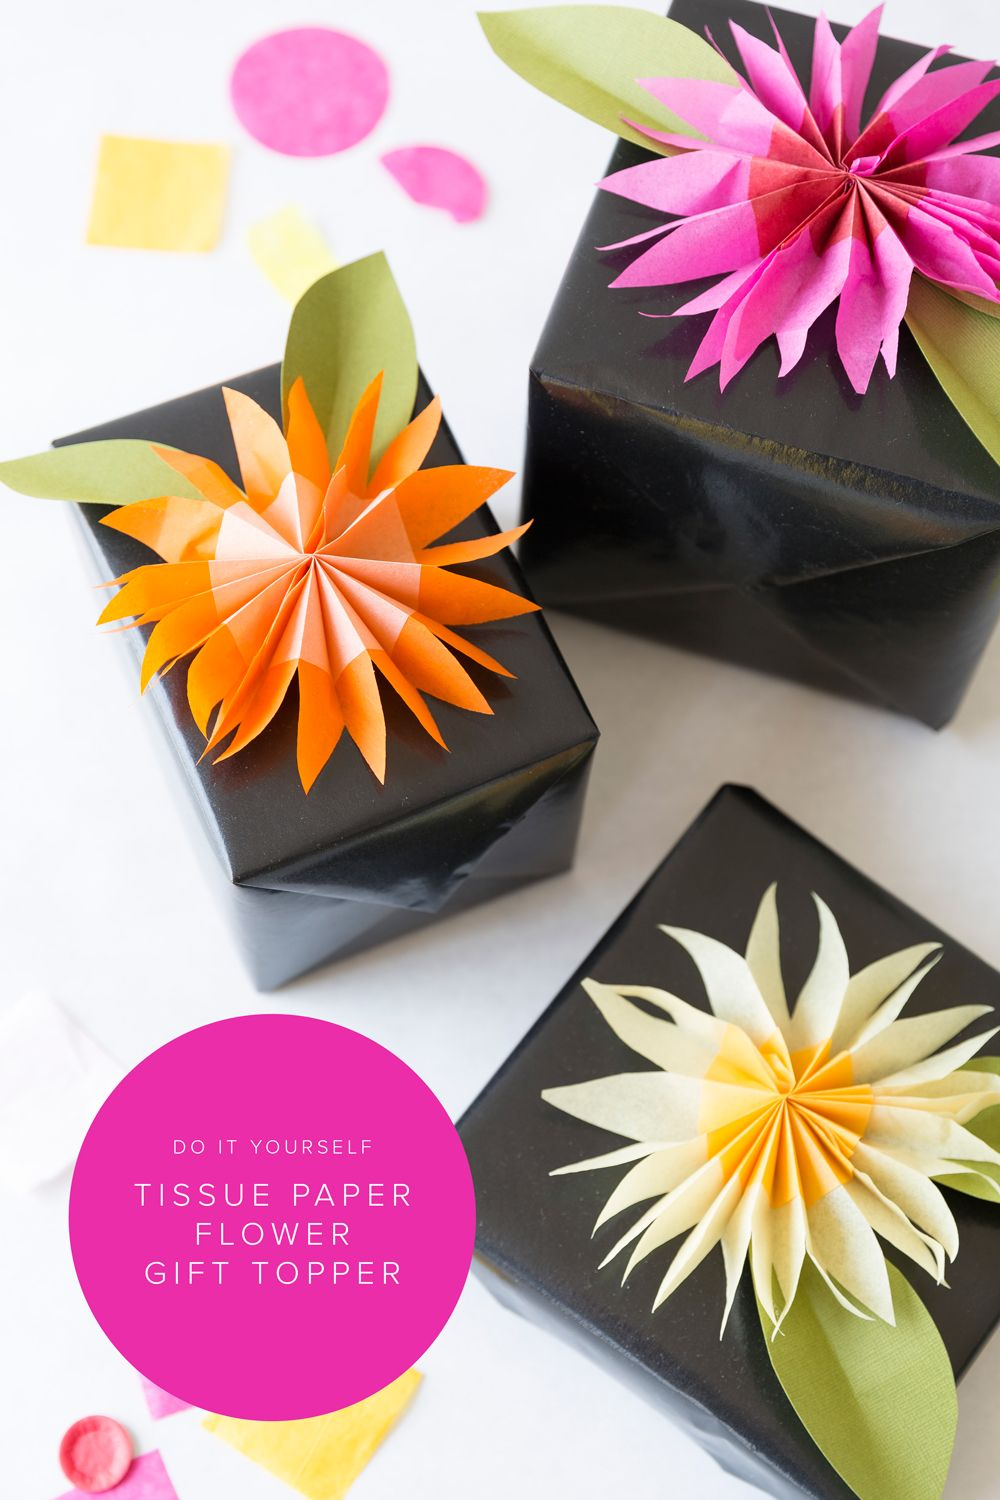 Diy paper tissue flower gift topper tissue flowers diy paper and diy paper tissue flower gift topper perfect for the holidays mightylinksfo